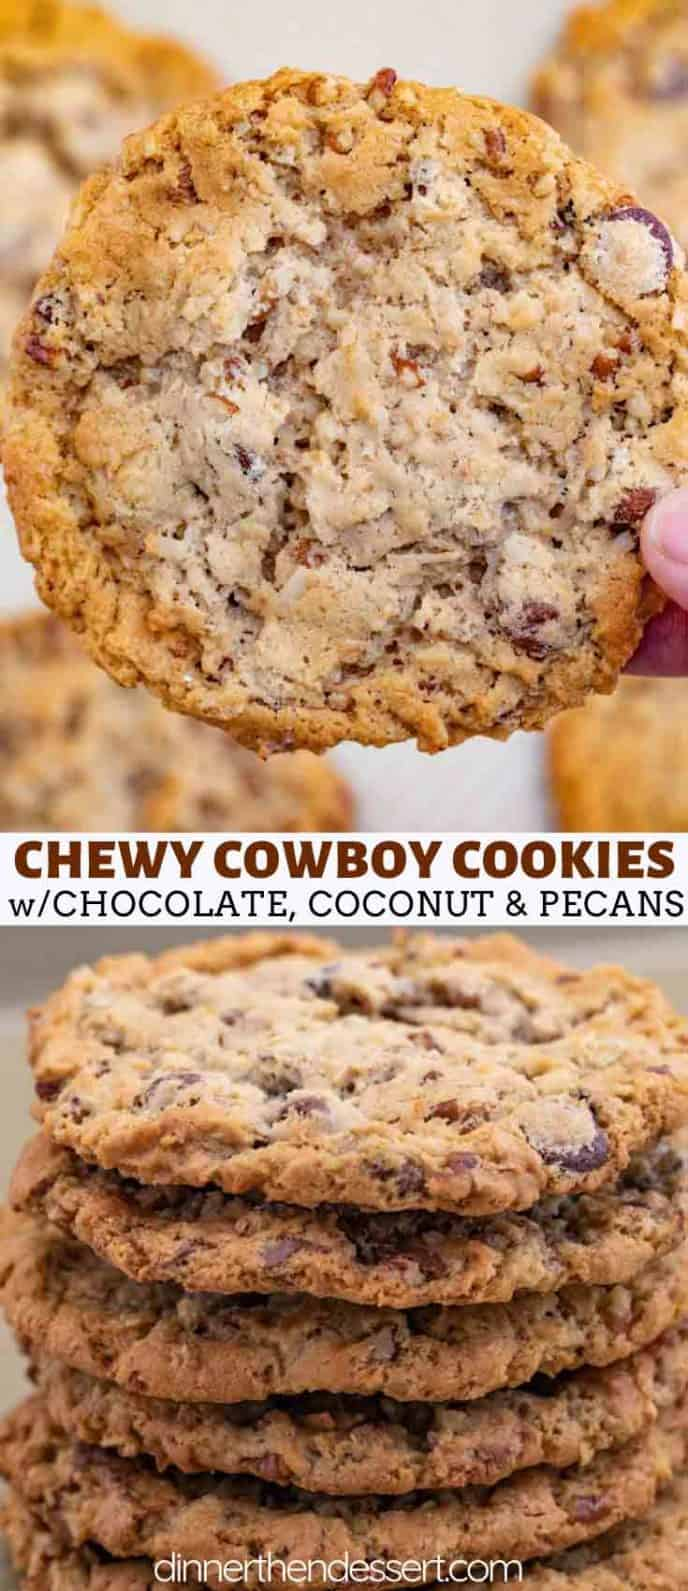 Cowboy Cookies with coconut chocolate and pecans